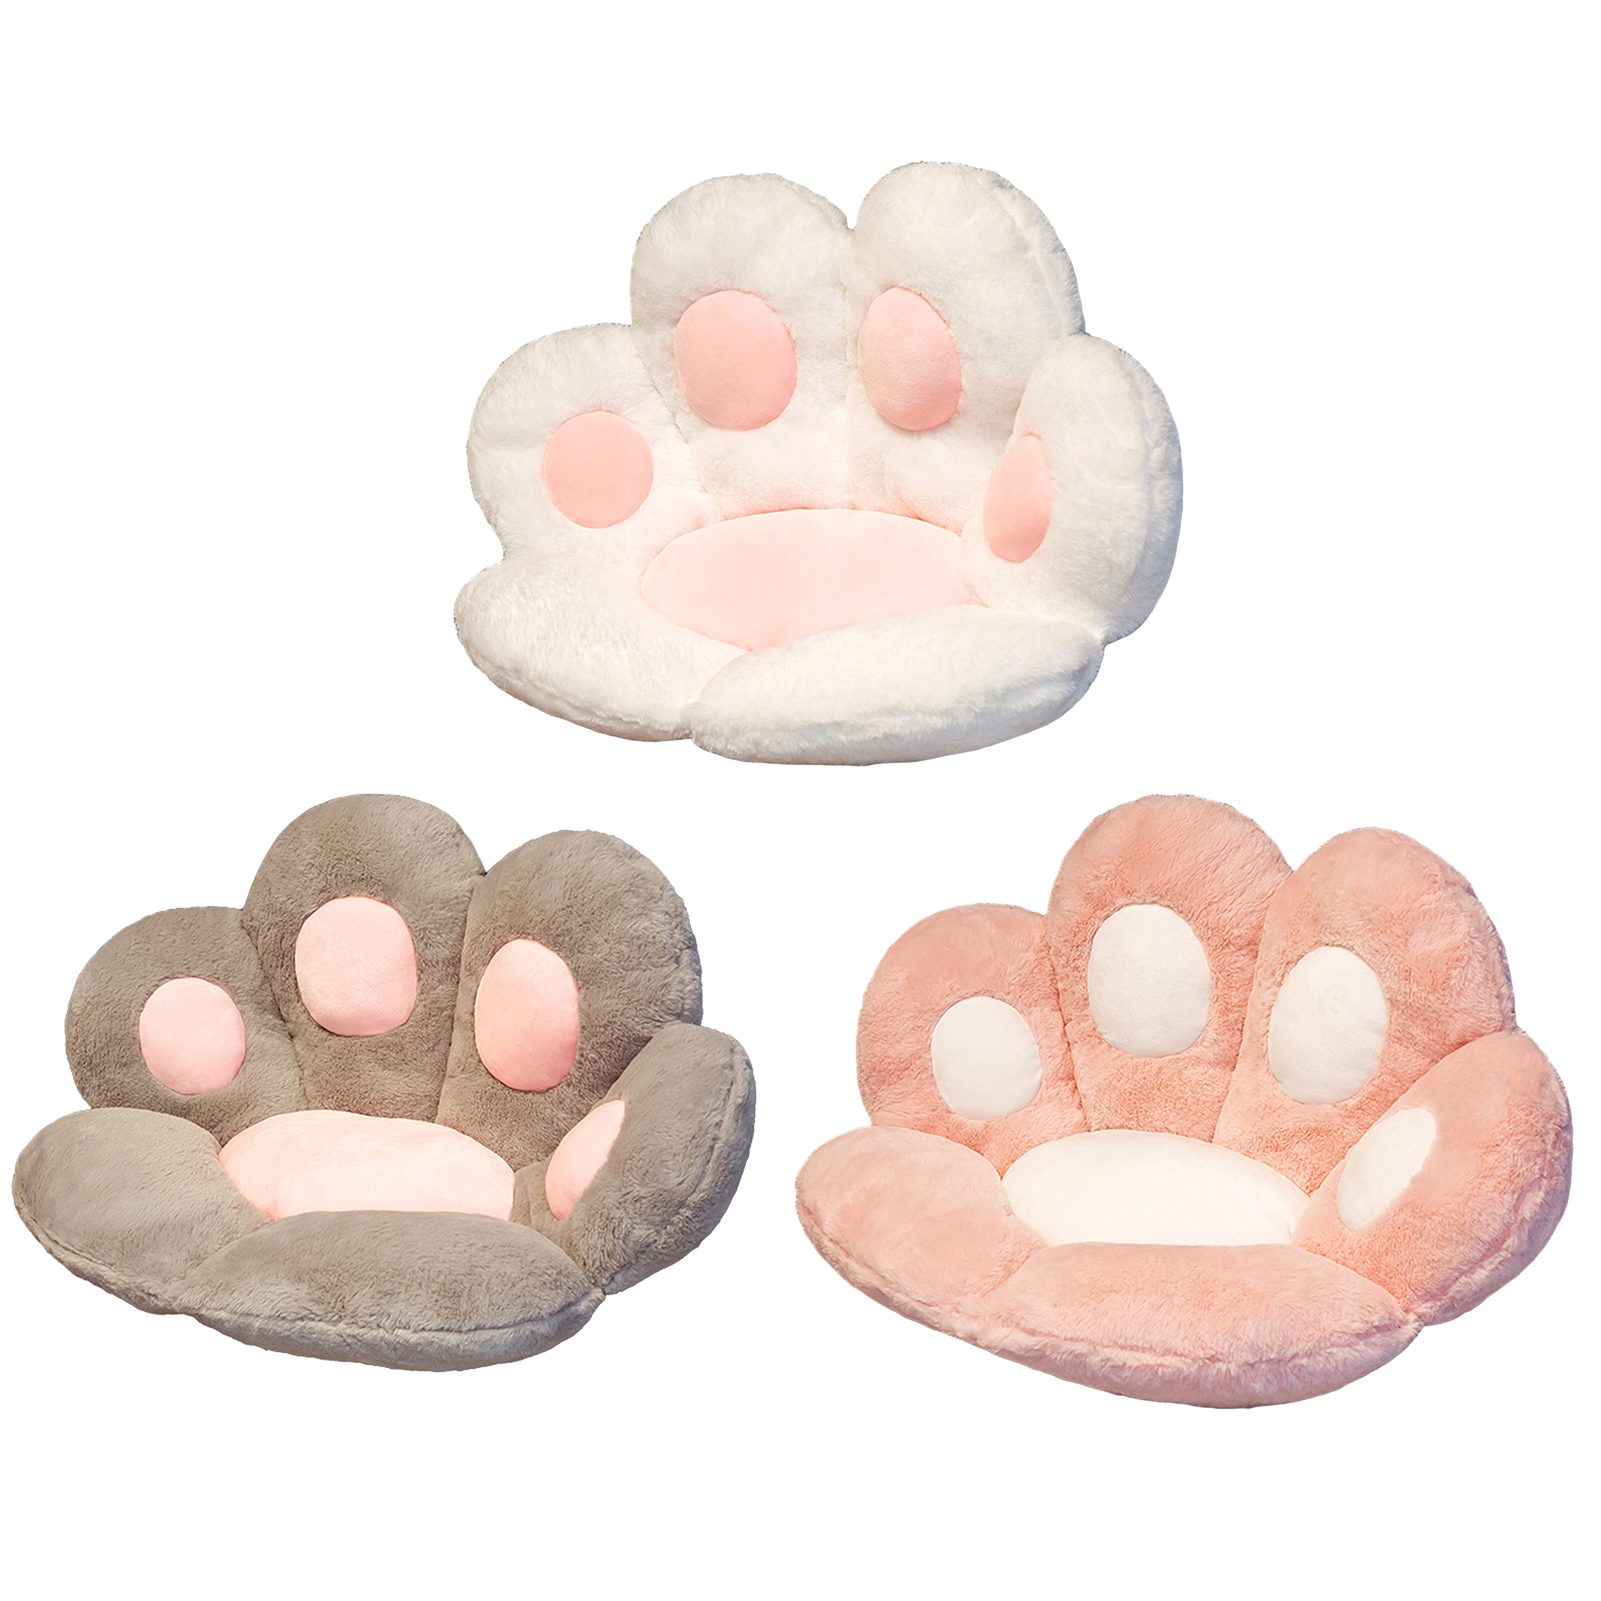 High Quality Cat Claw Seat Cushion for Adults Kids Lazy Sofa Warm Skin-friendly Floor Mat Good for Health Gift